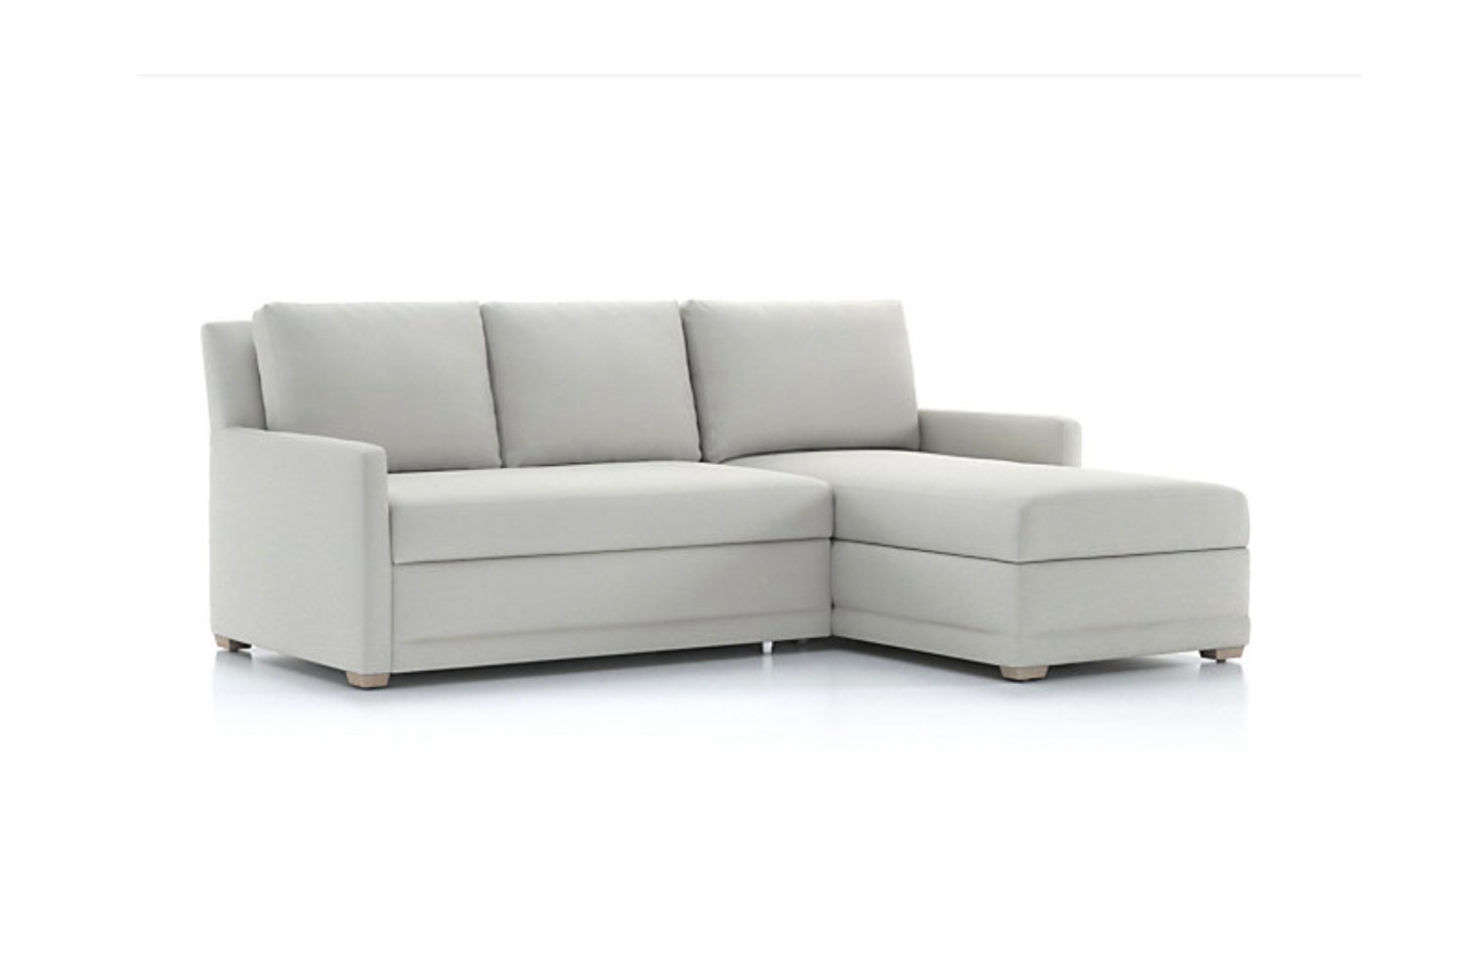 And, multitasking furniture is an essential in small spaces. See the editors picks for good-looking options in8 Favorites: Surprisingly Attractive Sofas With Storage.